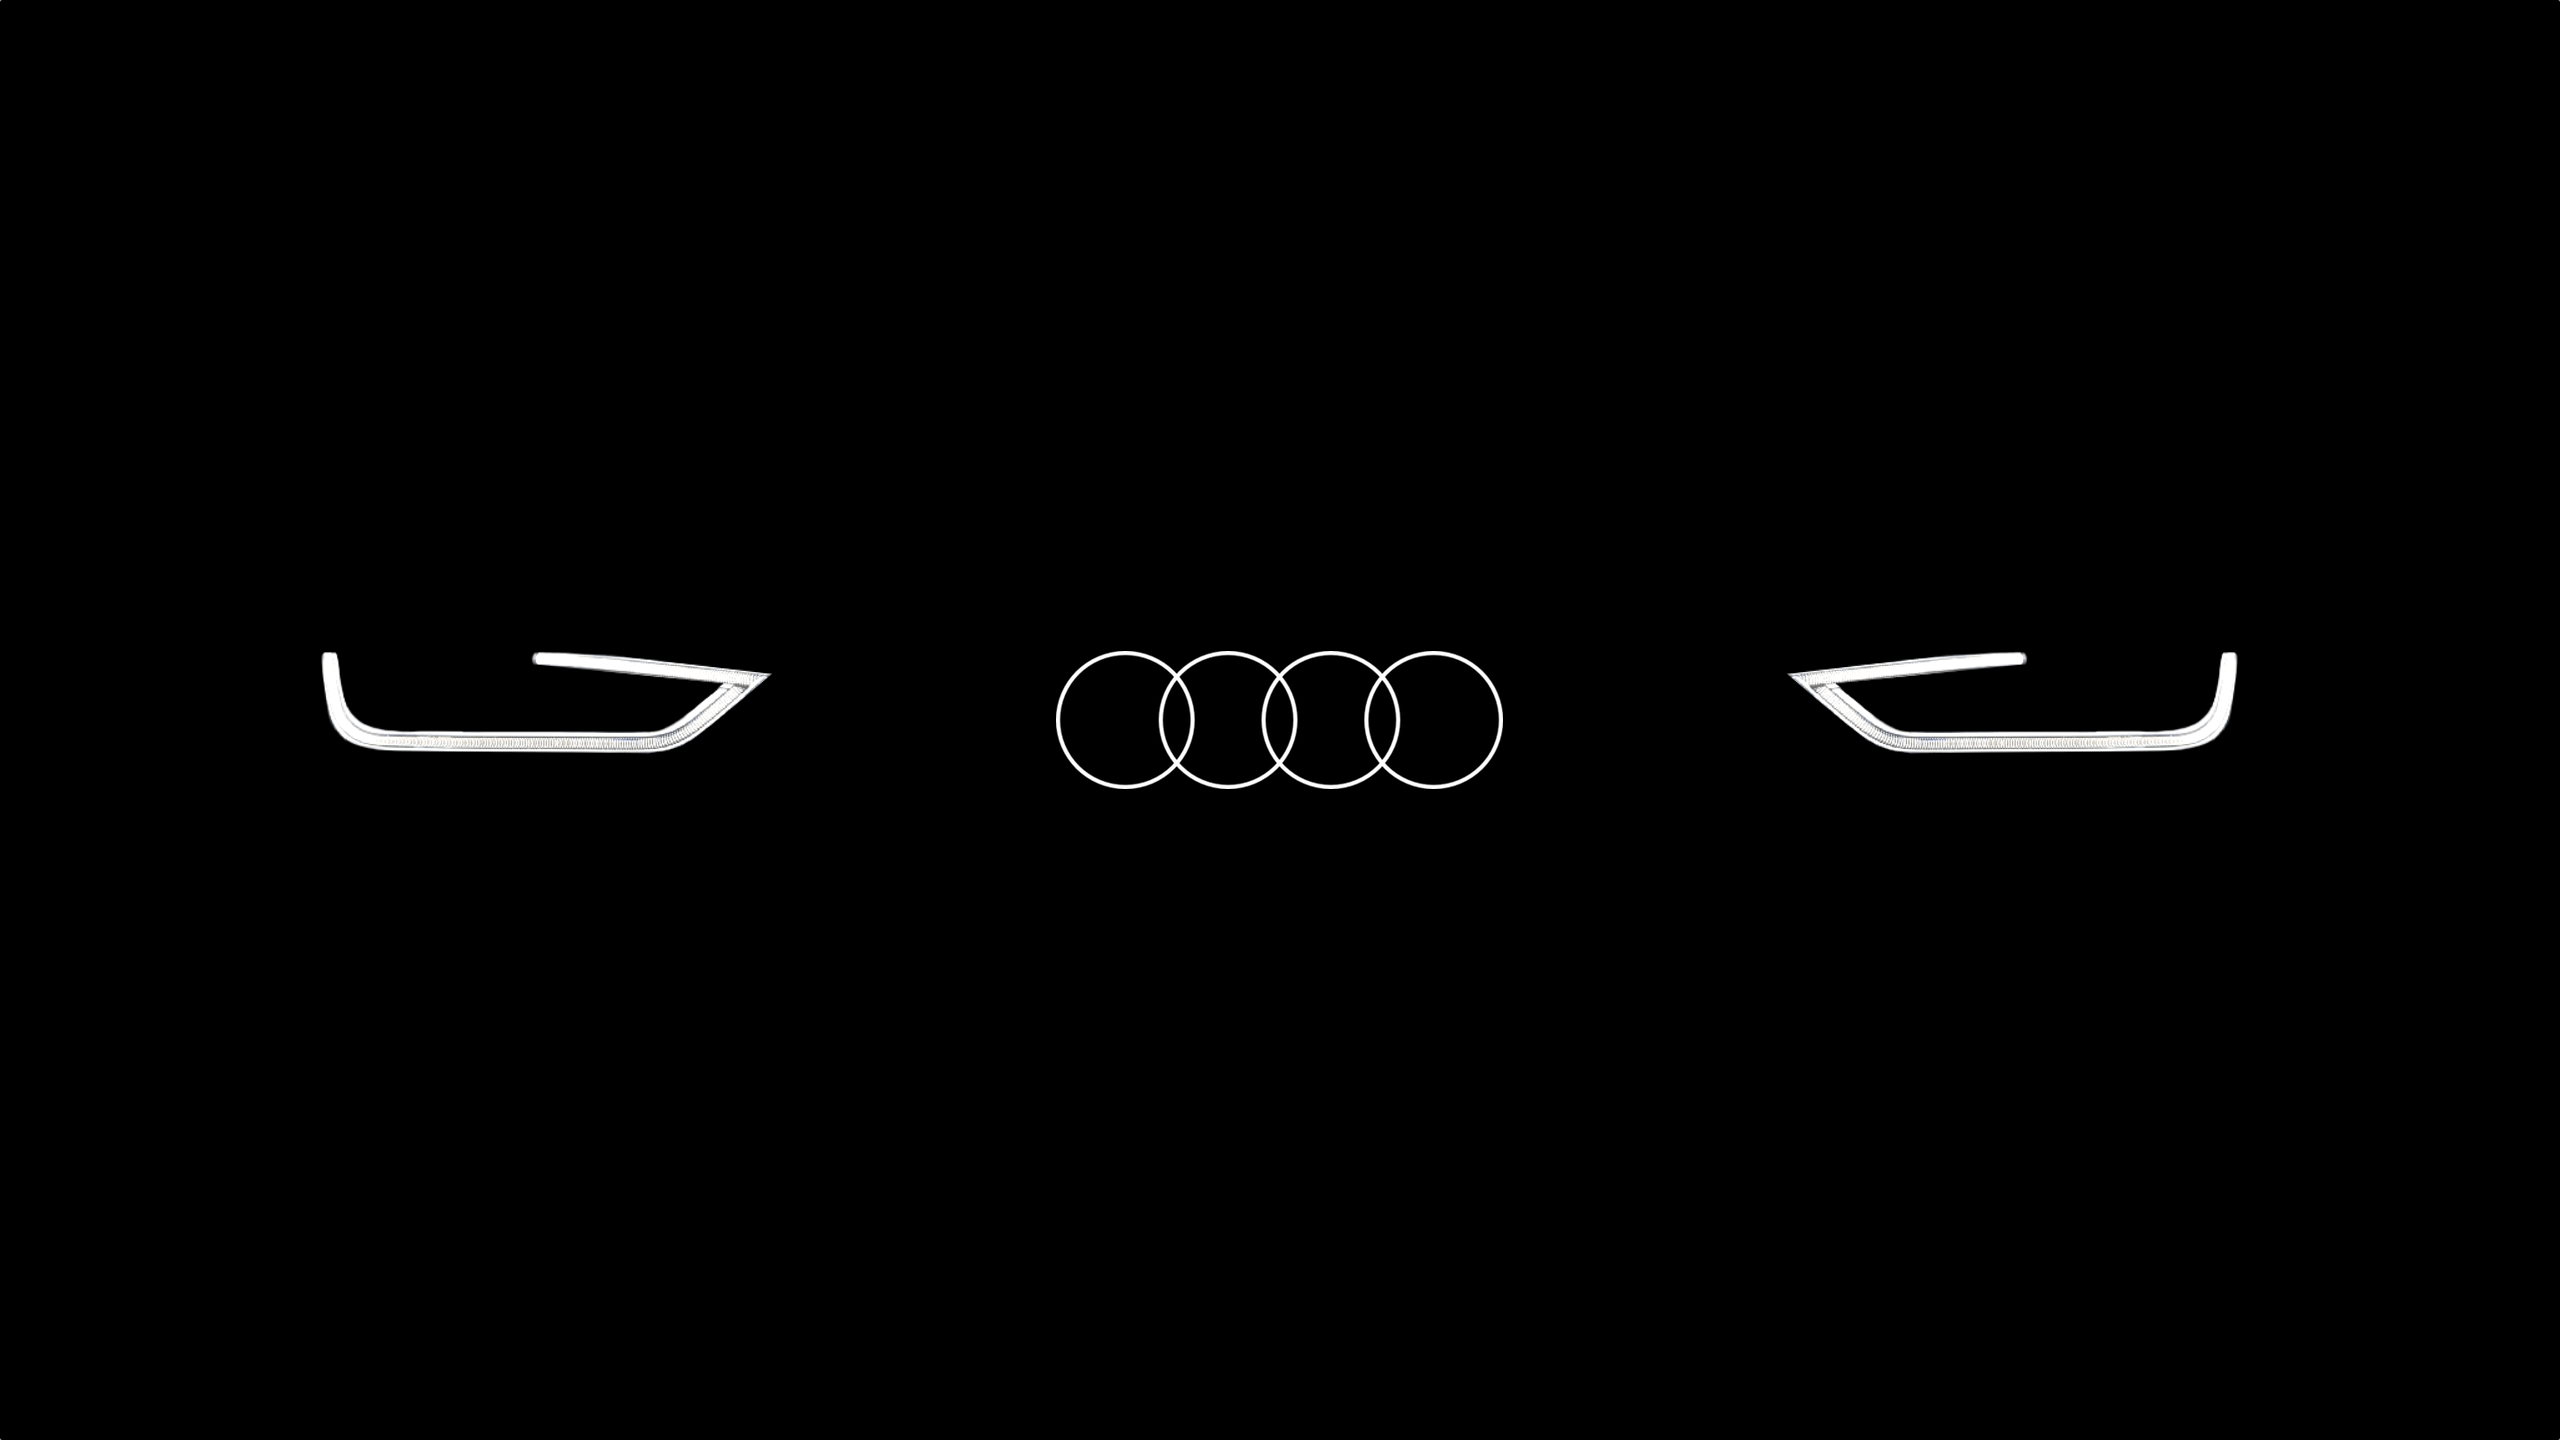 Audi Logo Wallpaper HD | HD Wallpapers, Backgrounds, Images, Art ...